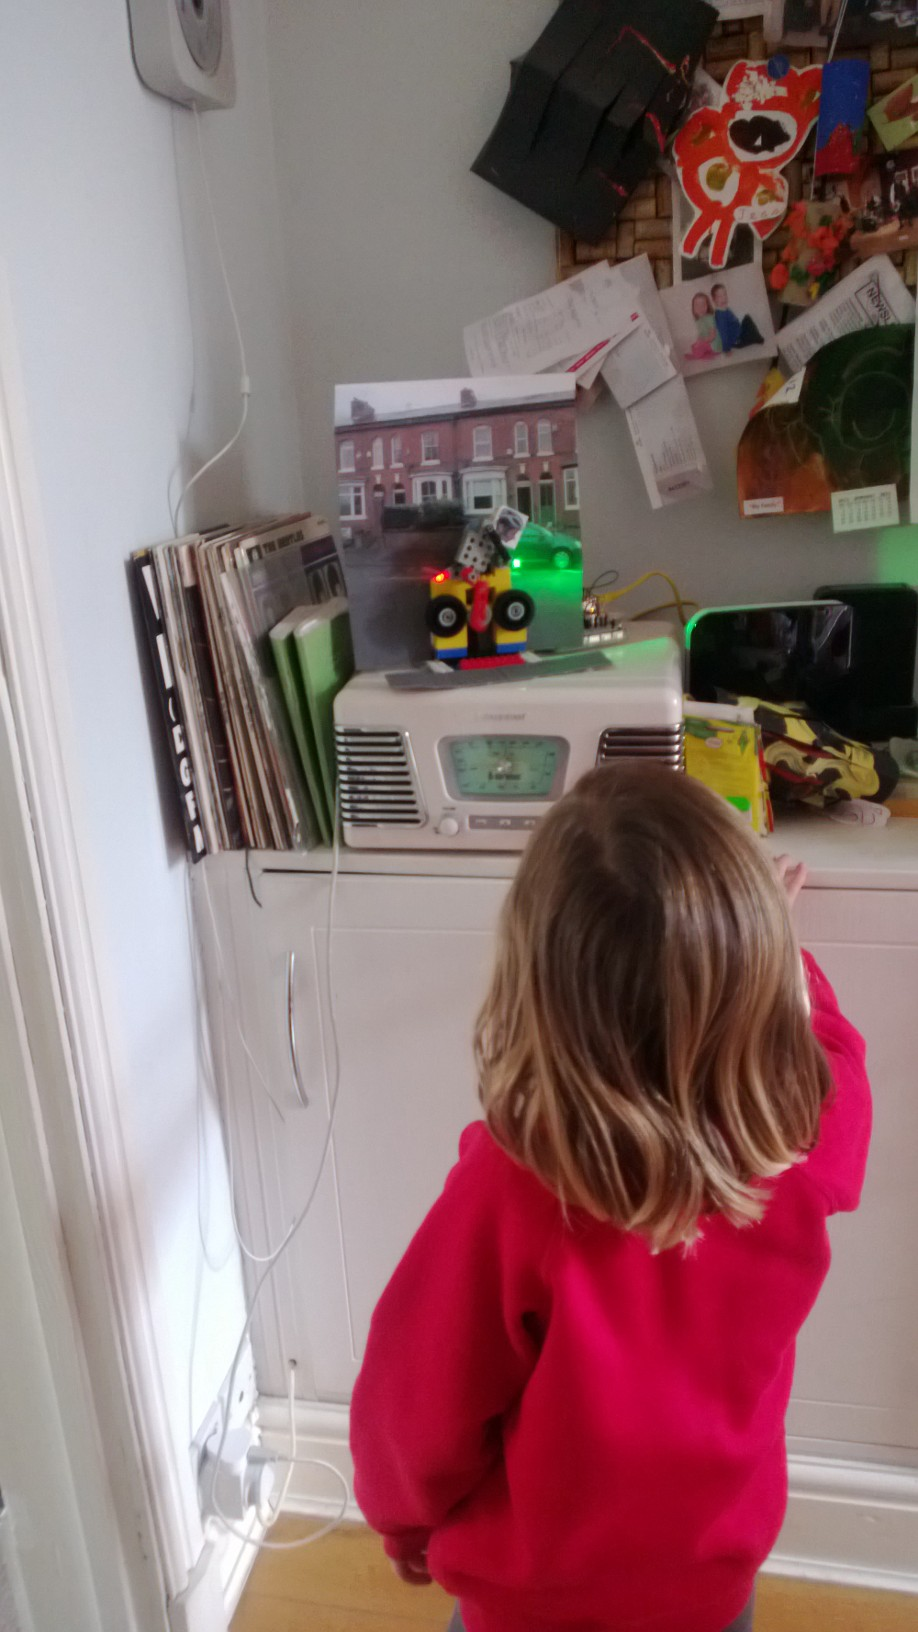 Cycling Indicator MkII – for the entertainment of a 4 yr old (of course)…